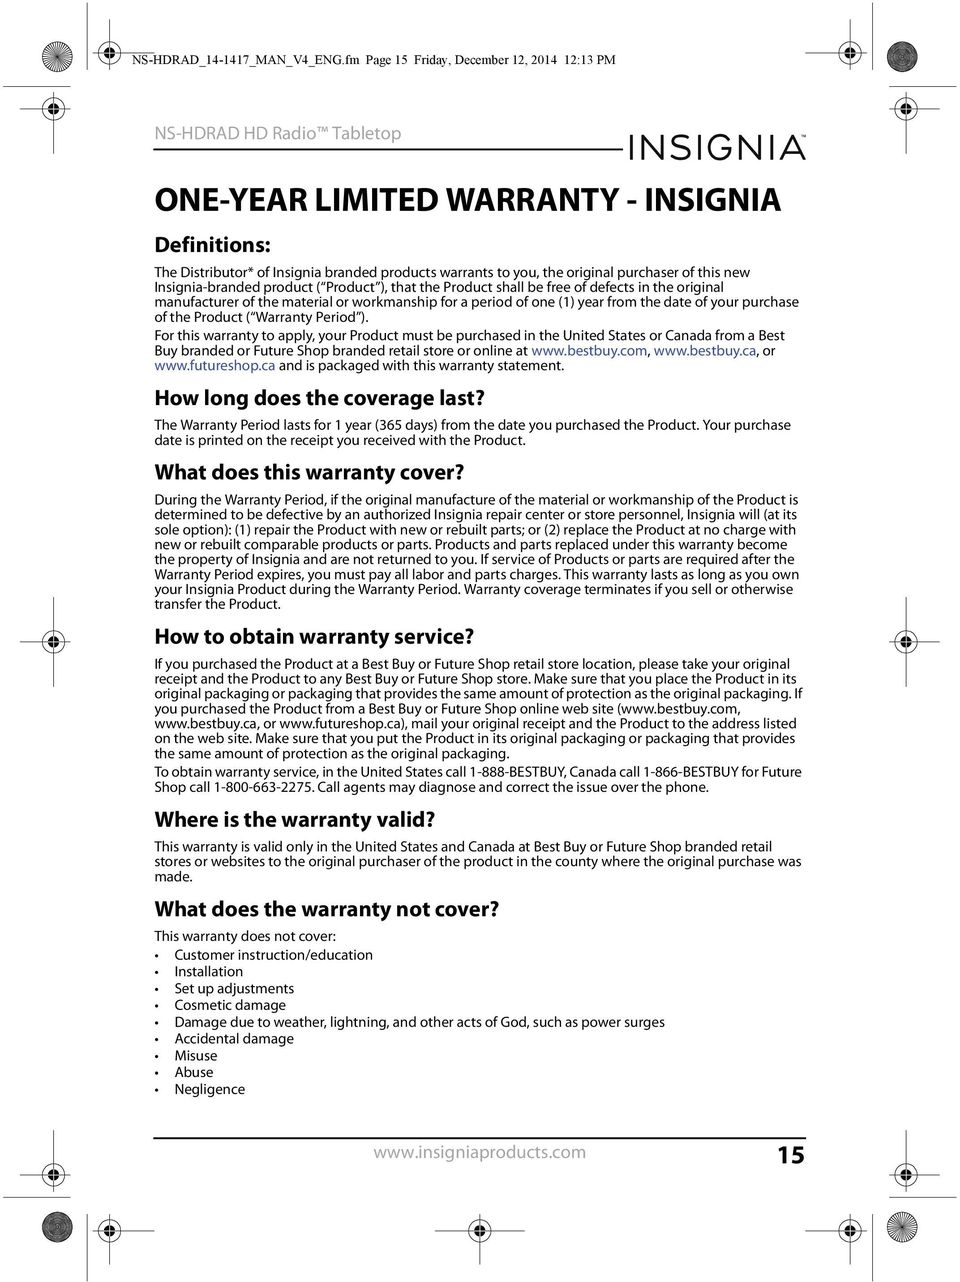 Insignia-branded product ( Product ), that the Product shall be free of defects in the original manufacturer of the material or workmanship for a period of one (1) year from the date of your purchase